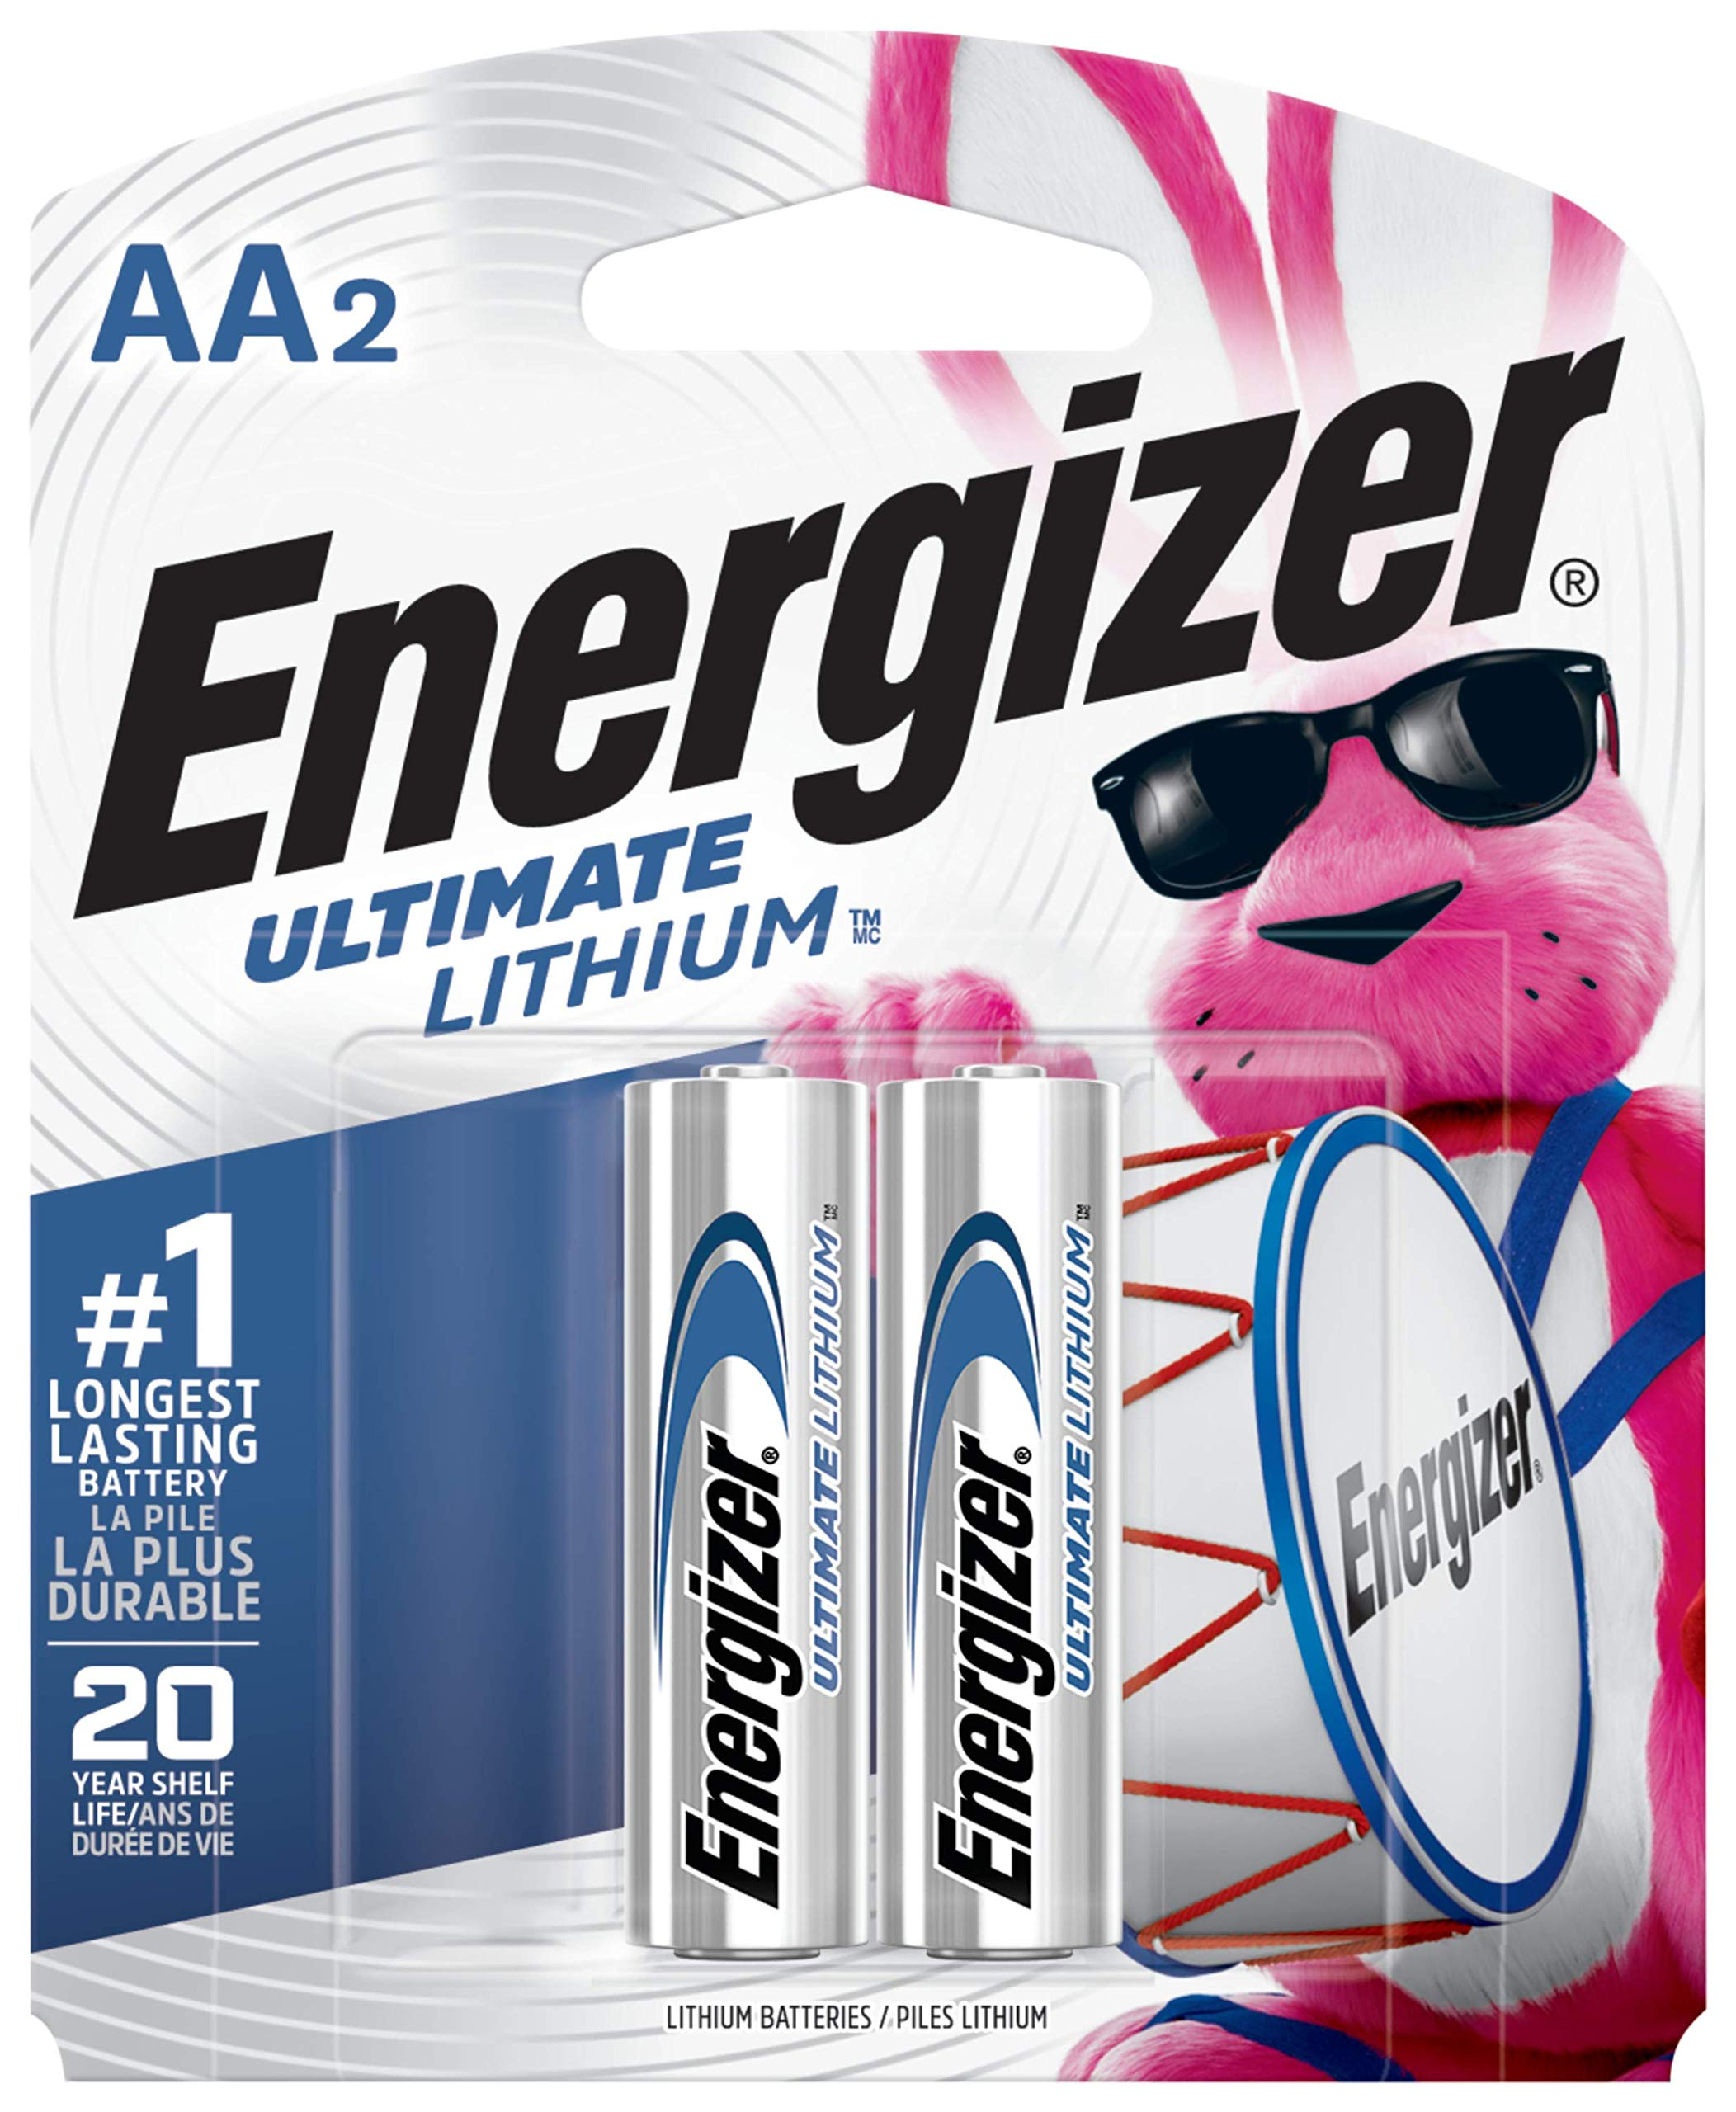 Energizer AA Lithium Batteries, World's Longest Lasting Double A Battery, Ultimate Lithium (2 Battery Count)